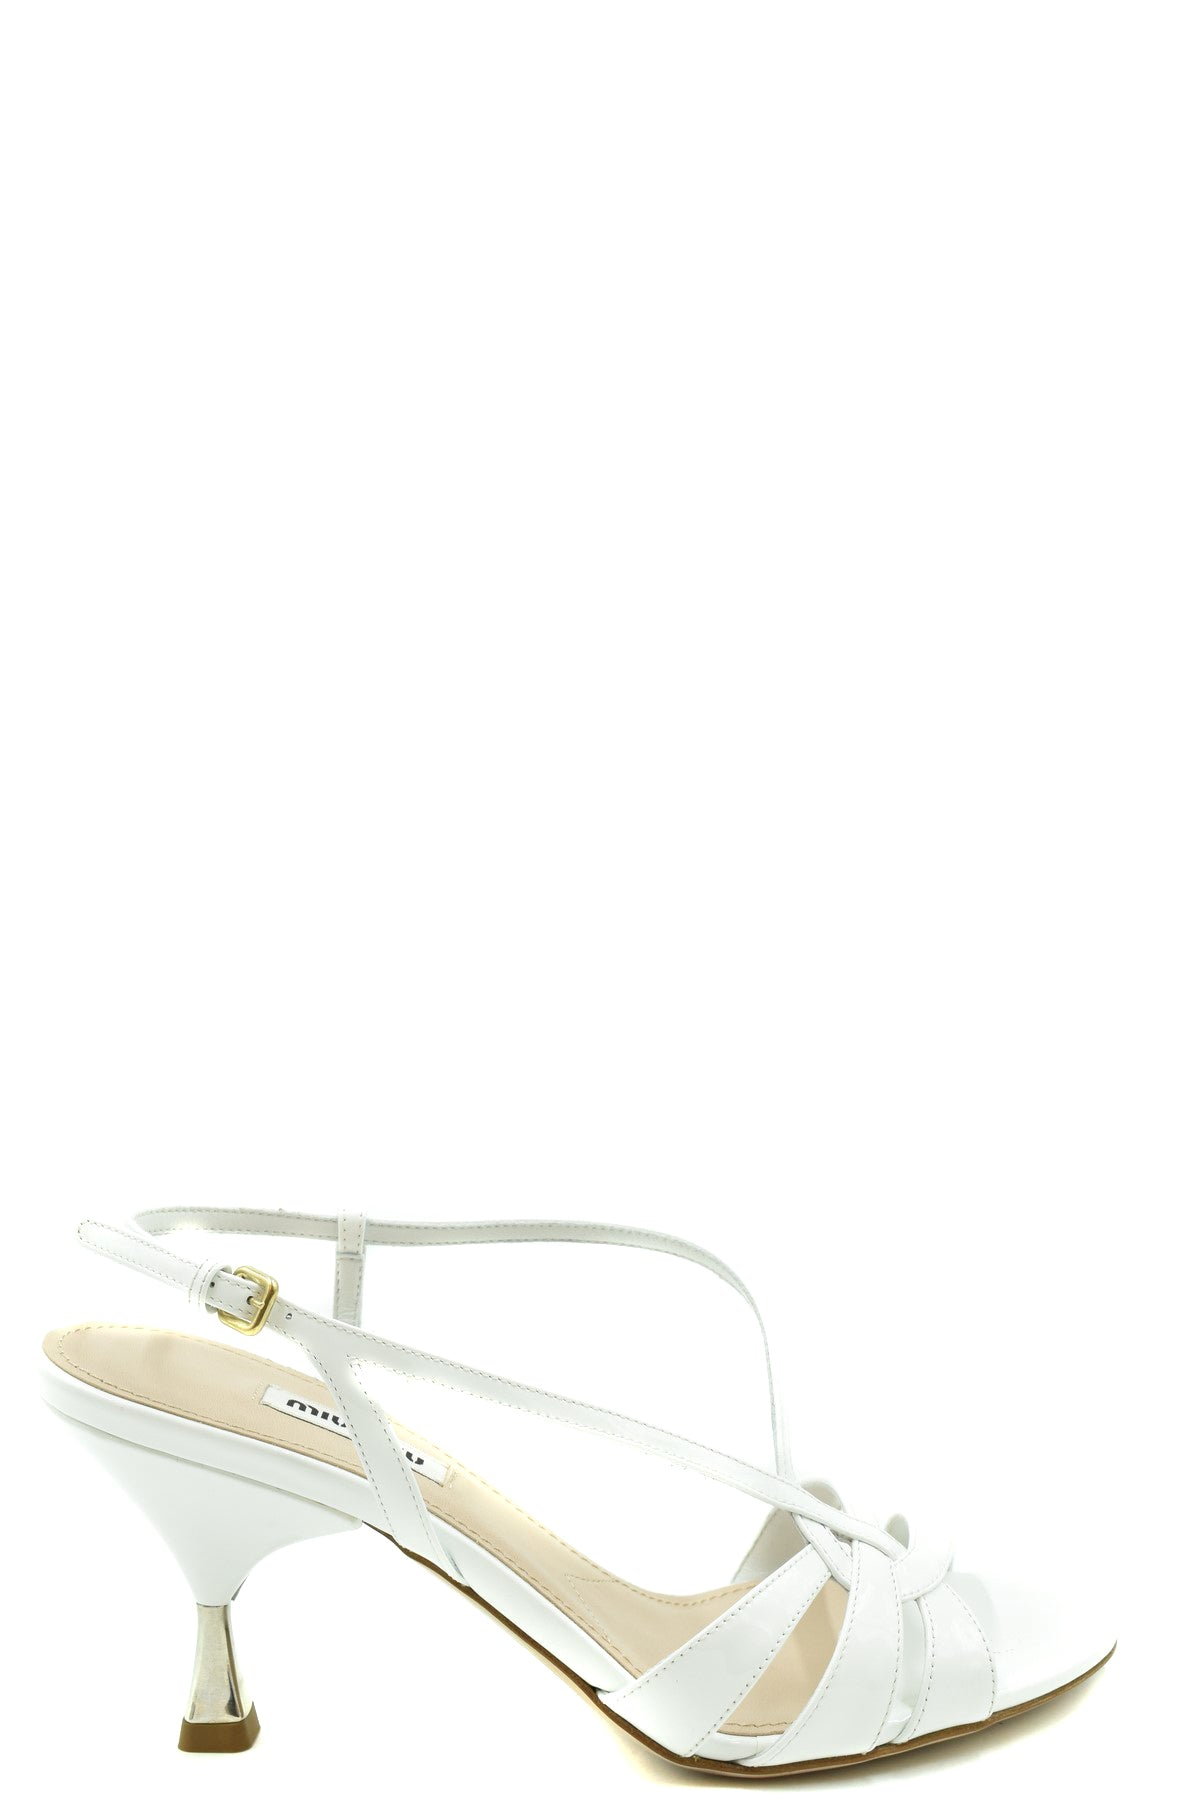 Shoes Miu Miu-Women's Fashion - Women's Shoes - Women's Sandals-35-Product Details Type Of Accessory: ShoesTerms: New With LabelSeason: Spring / SummerMain Color: WhiteMade In: ItalyGender: WomanHeel'S Height: 7,5 CmSize: EuComposition: Dye 100%Year: 2020Manufacturer Part Number: 5X154D 3Asn-Keyomi-Sook